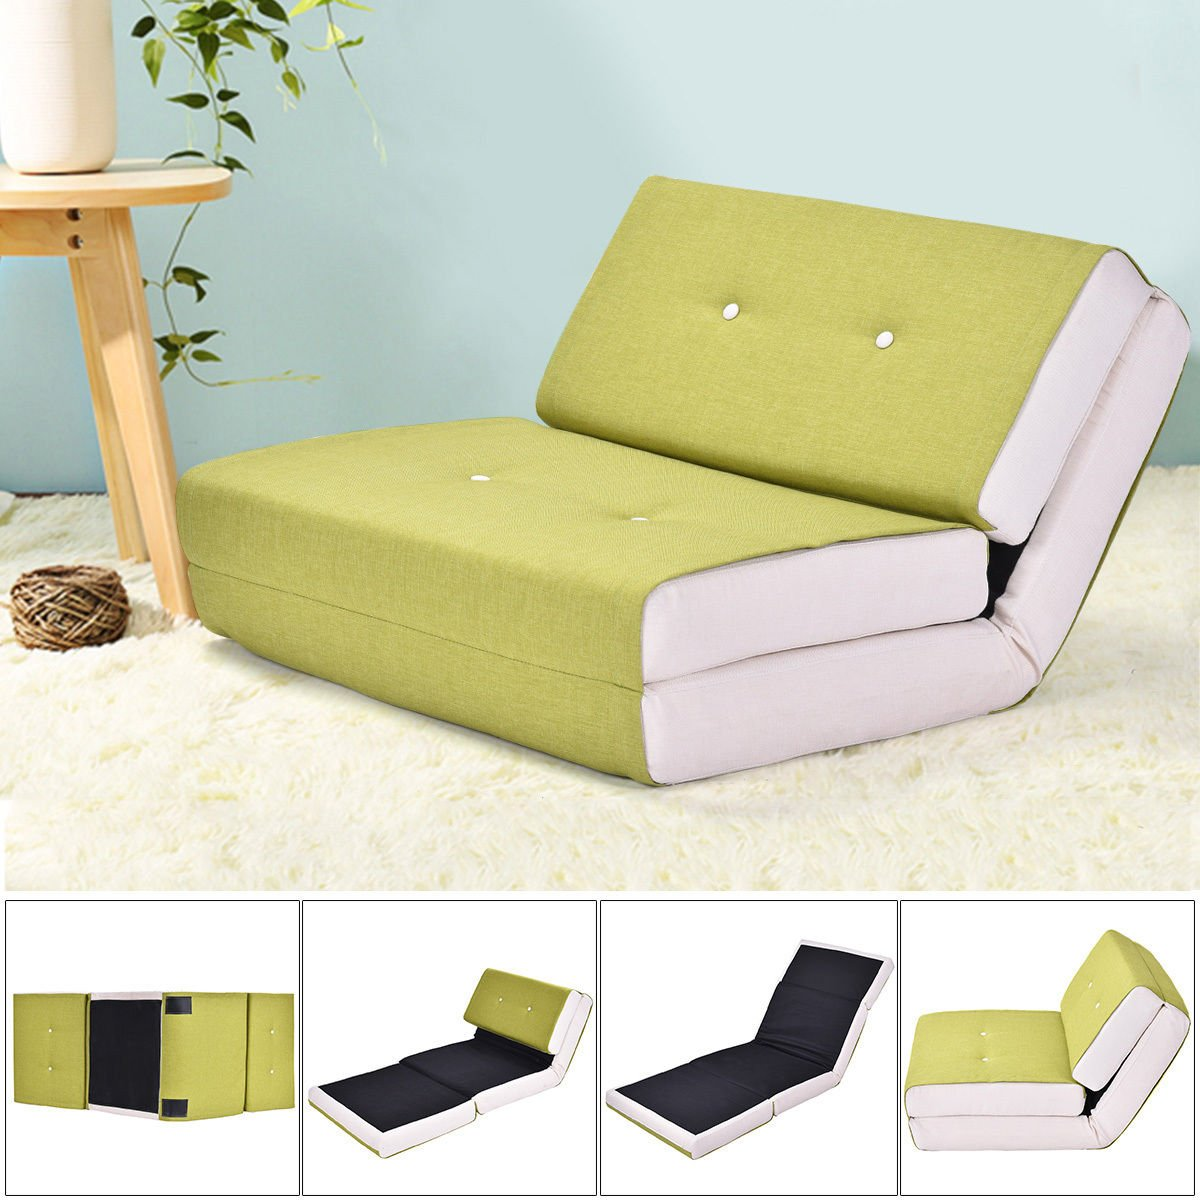 Fold Down Chair Flip Out Lounger Convertible Sleeper Bed Couch Game Dorm Green by Tumsun (Image #2)